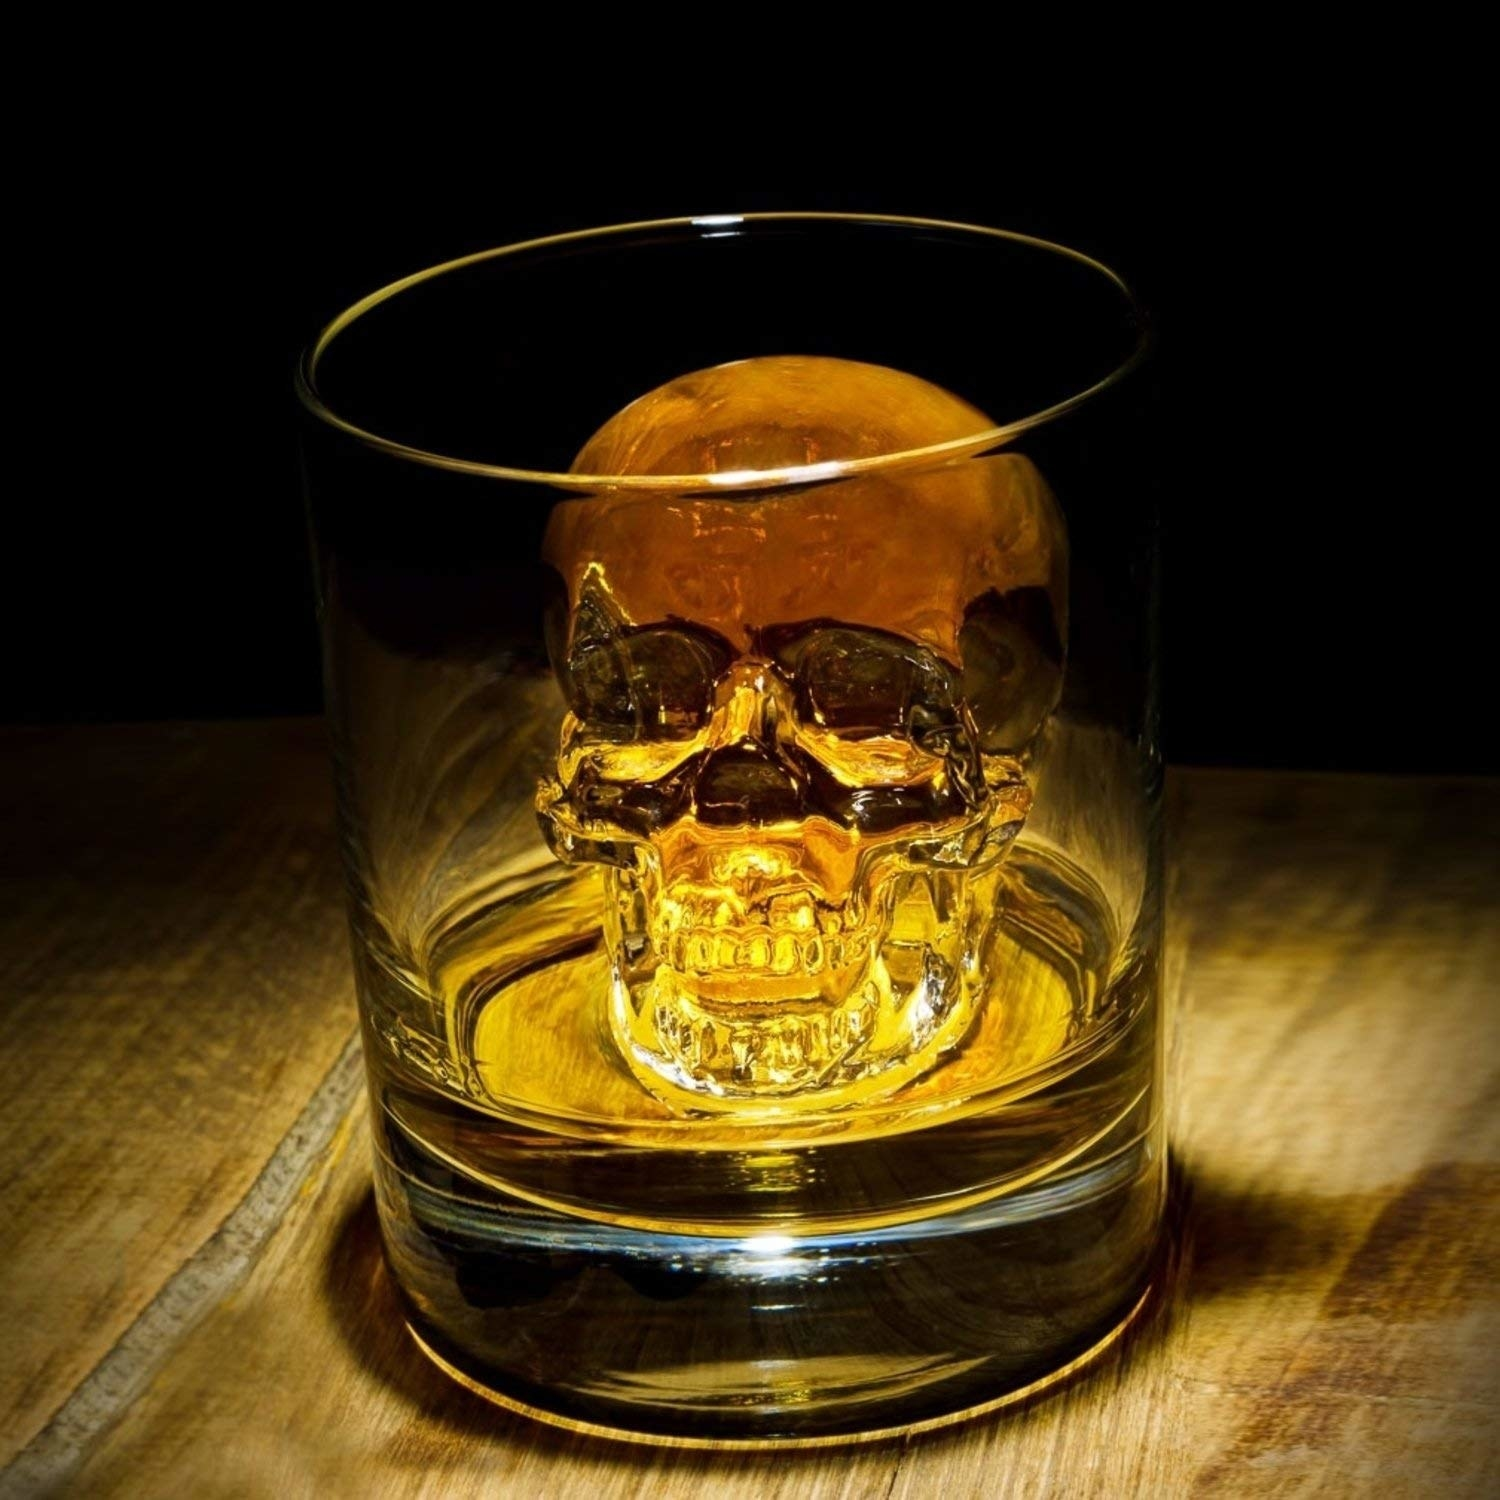 A skull-shaped ice cub in a whiskey glass